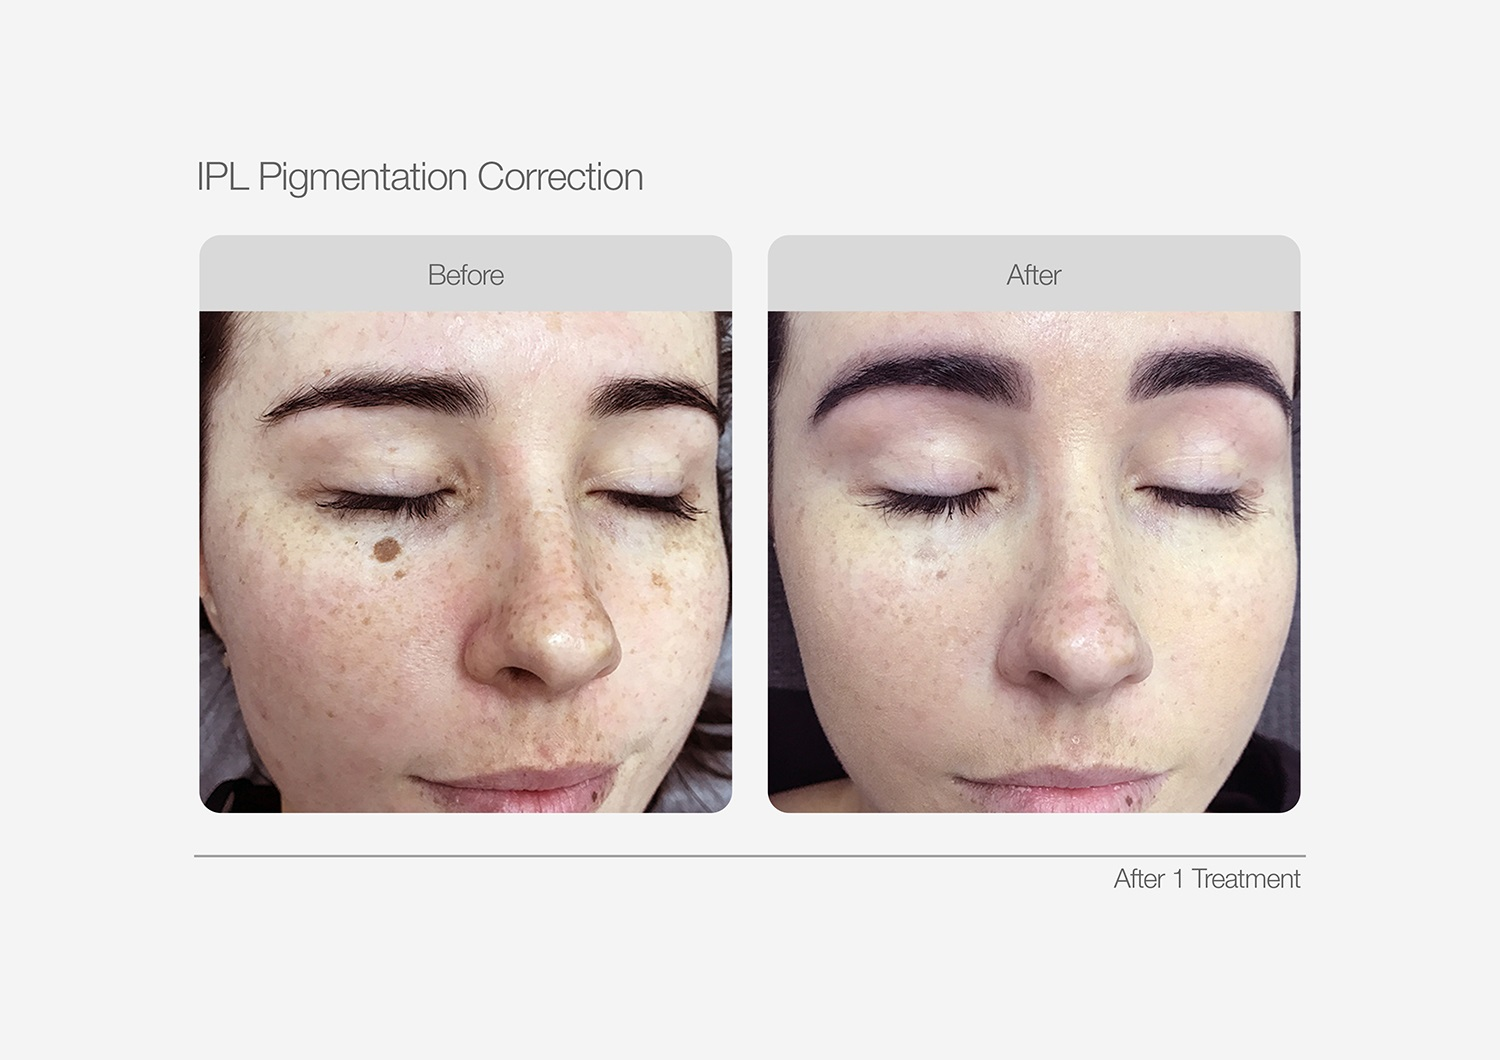 IPL-Pigmentation-Correction-Before-After-06